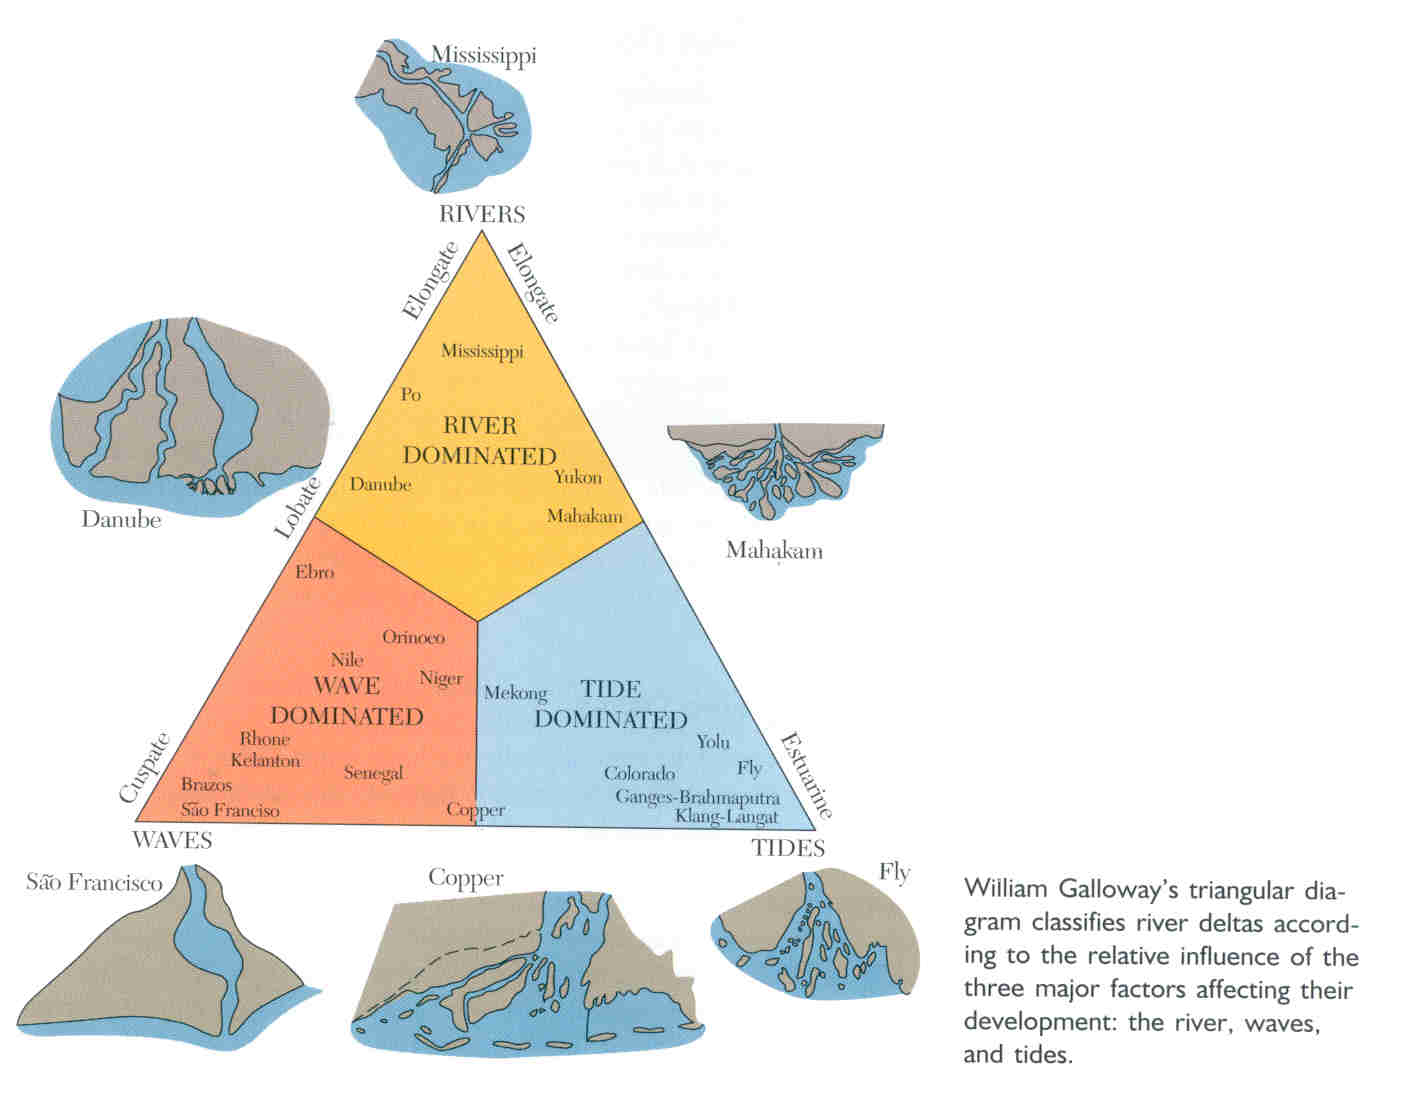 diagram of a delta landform beef cow cut room 611 days 38 40 wednesday november 3 friday